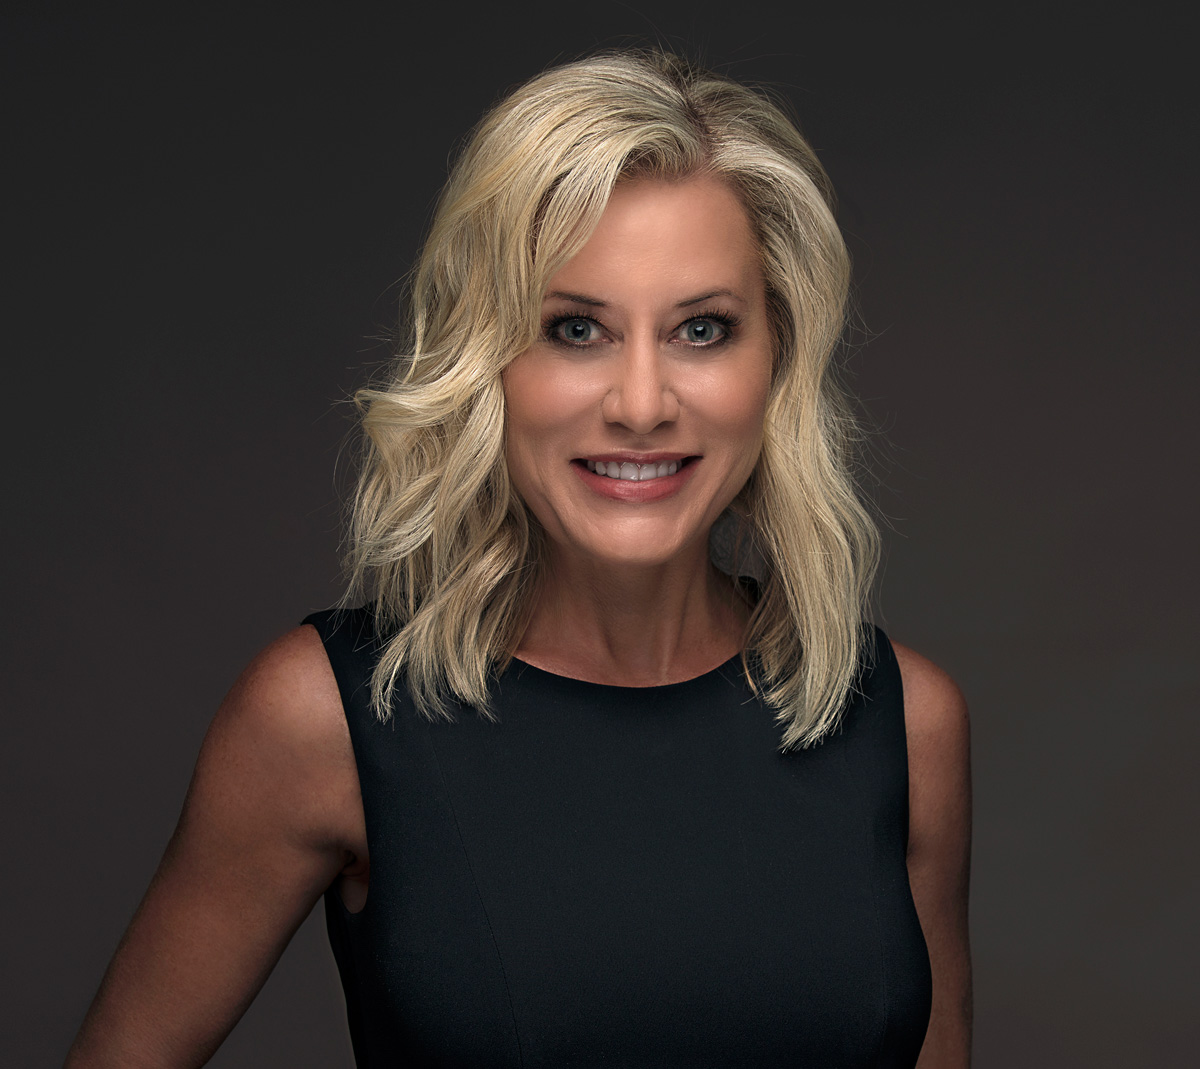 Vice president of marketing at Riverchase Dermatology and Cosmetic Surgery.